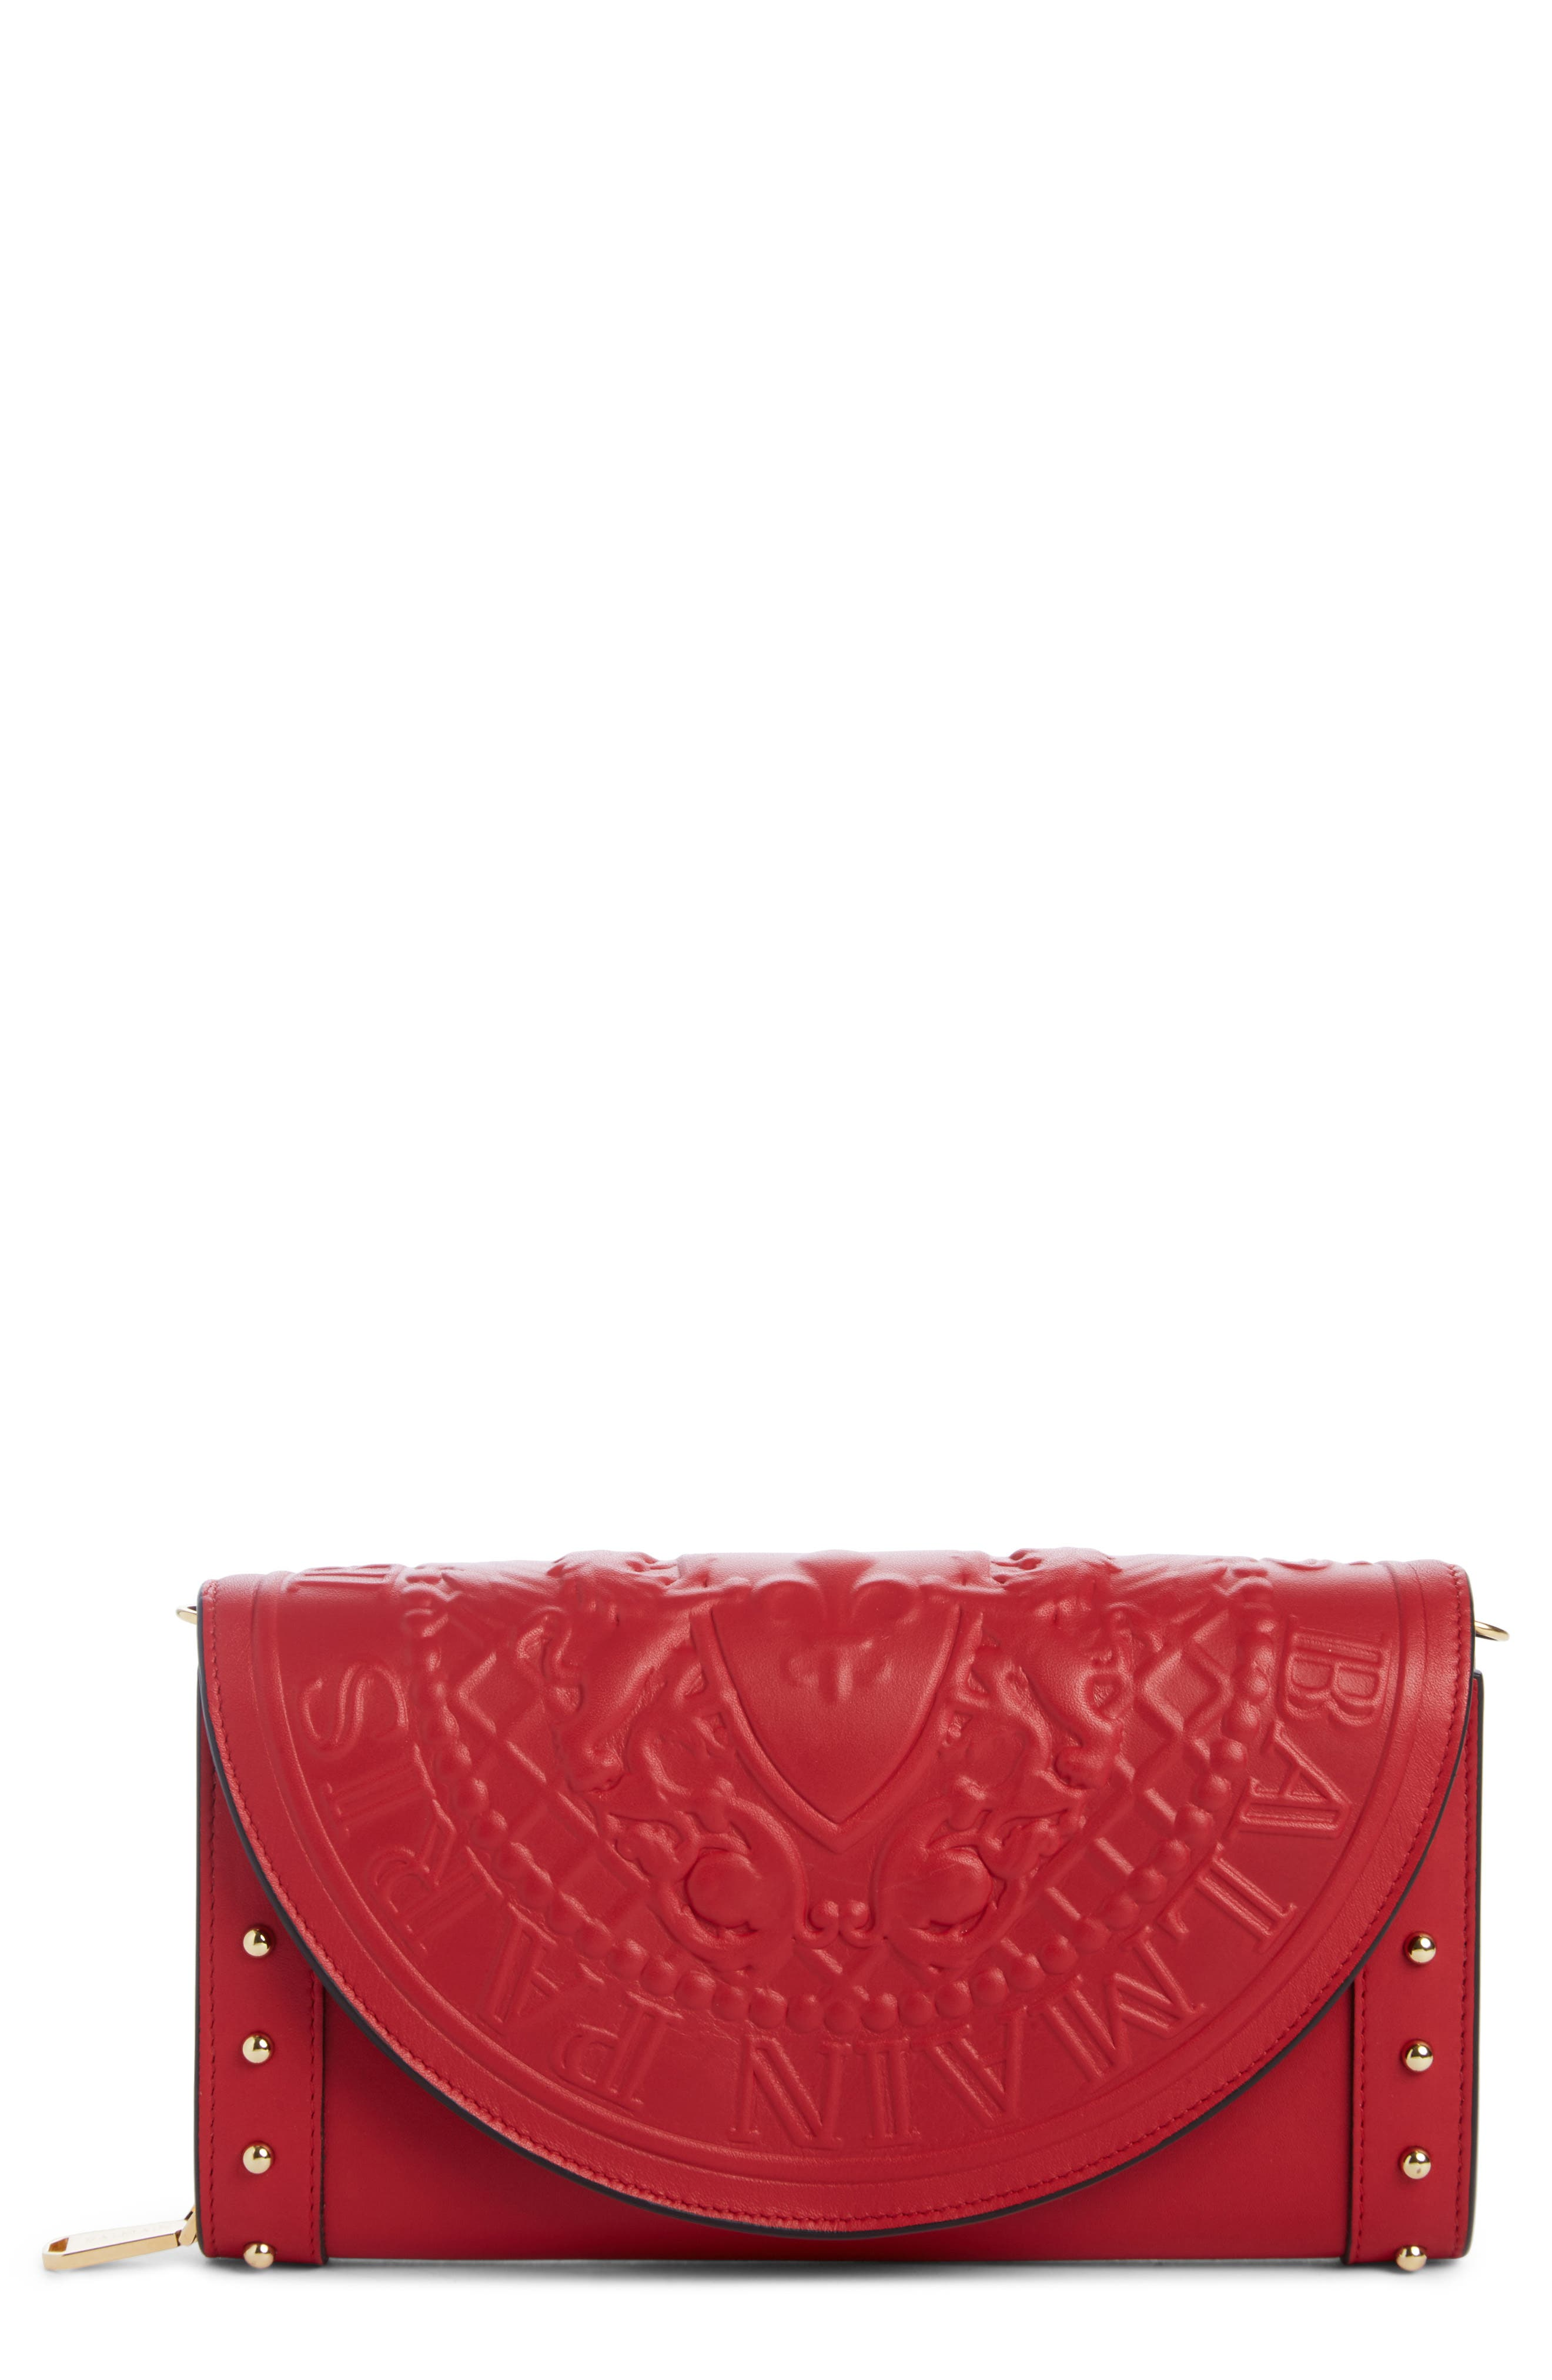 Alternate Image 1 Selected - Balmain Renaissance Leather Wallet on a Chain